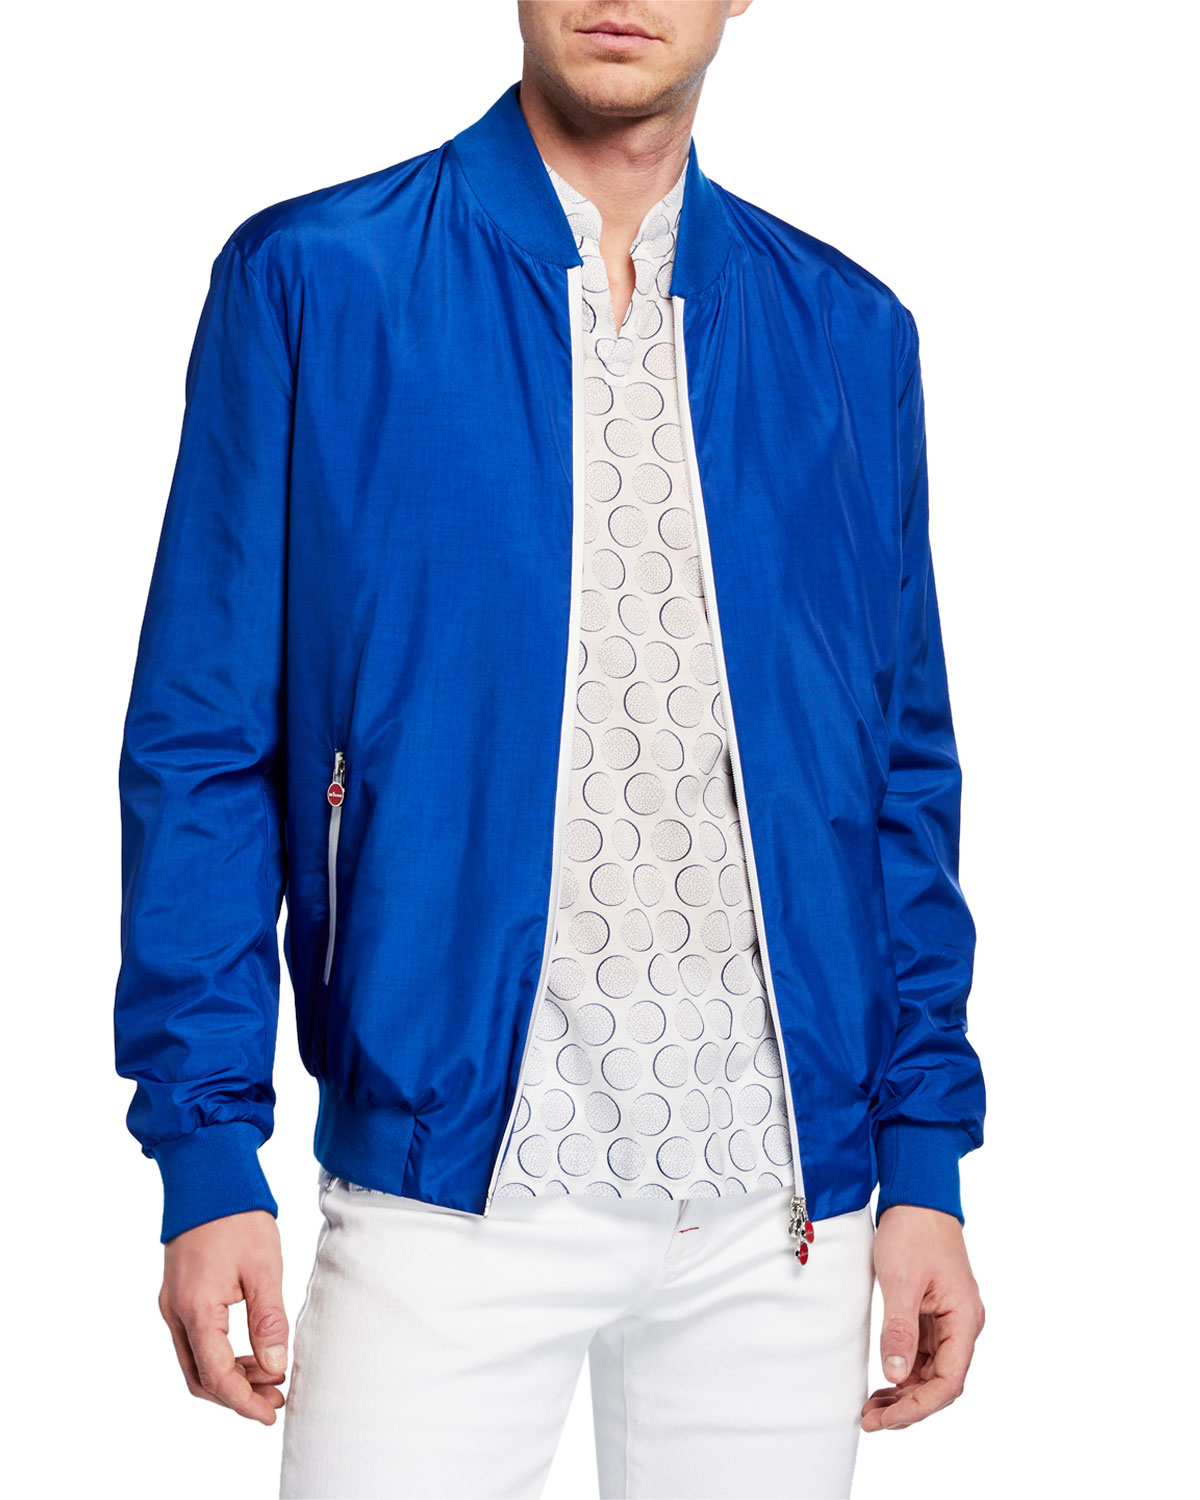 9bc50f7a Men's Sateen Bomber Jacket, Royal Blue